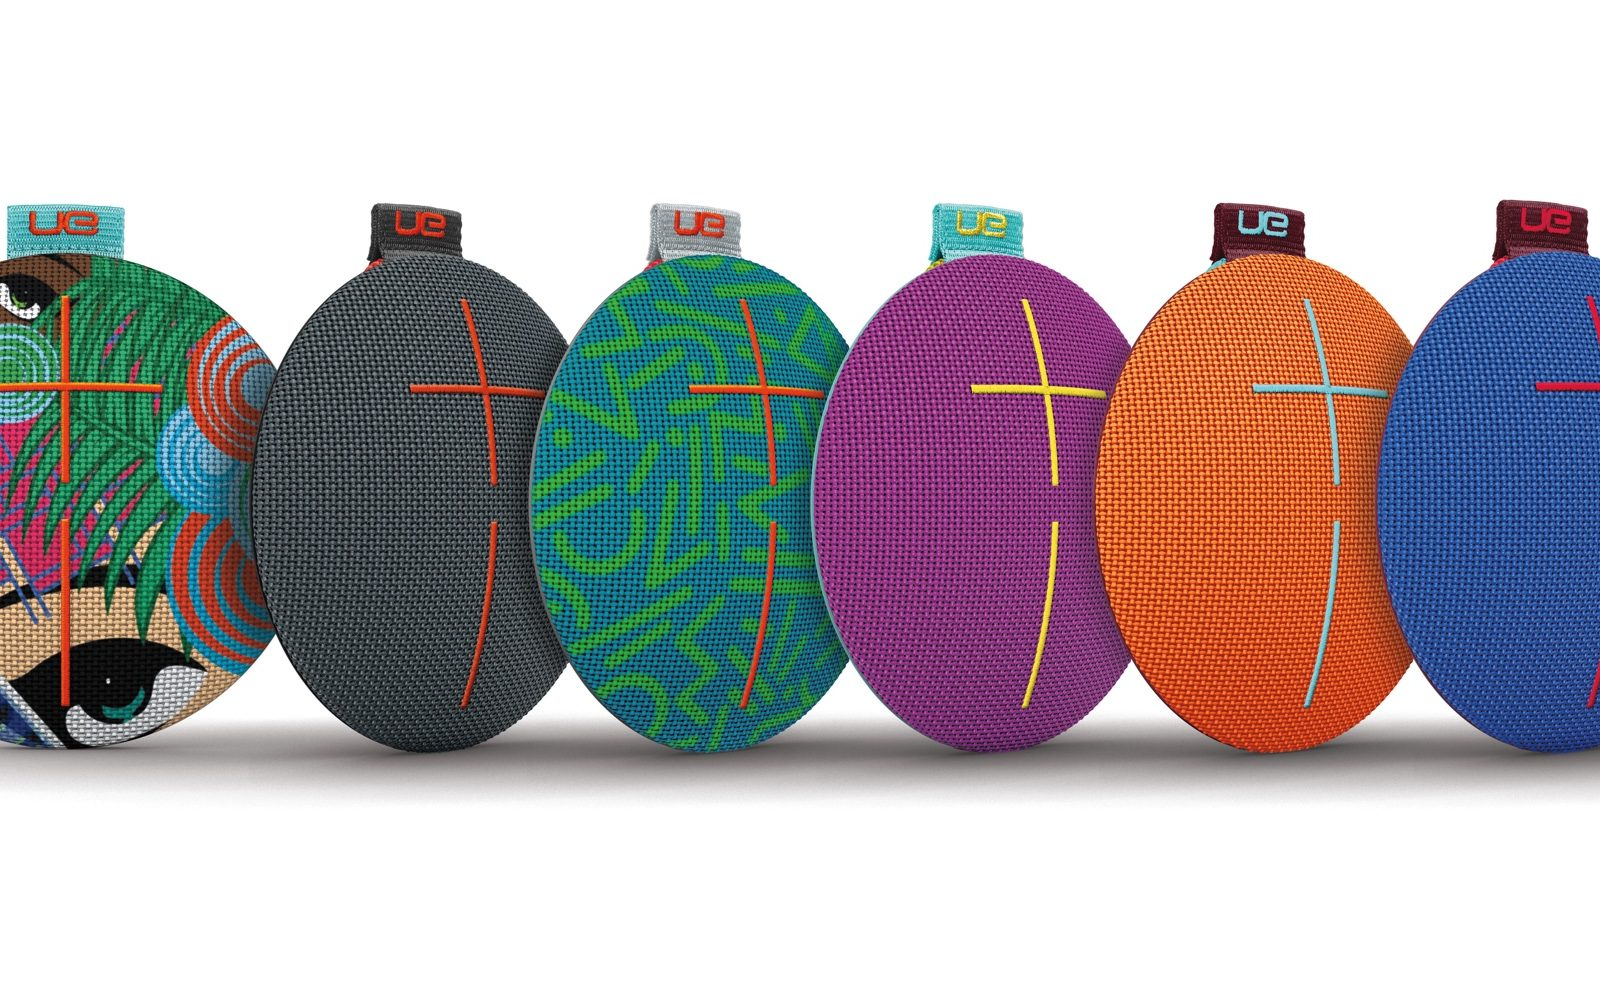 The UE Roll 2 is this summer's best Bluetooth speaker, but